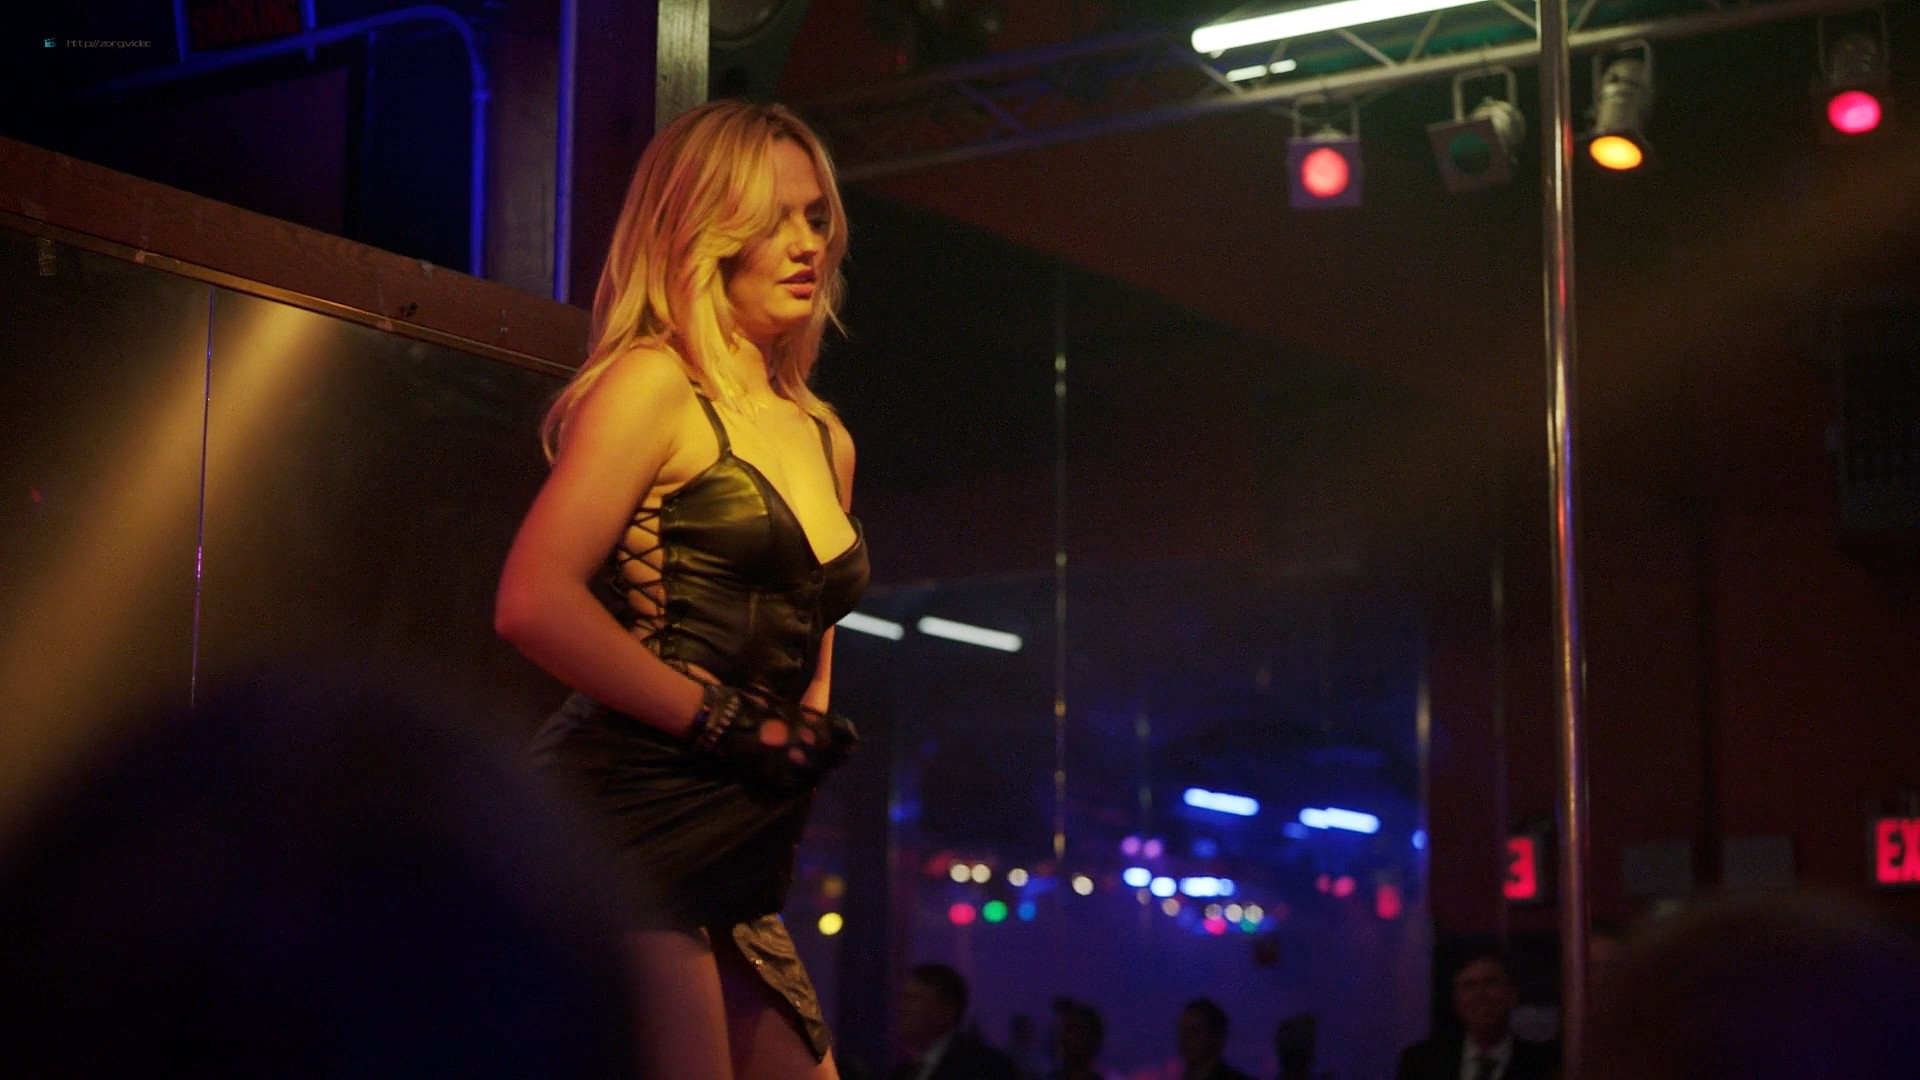 Emily Meade nude topless Samantha Steinmetz topless too - The Deuce (2019) s3e5 1080p (9)